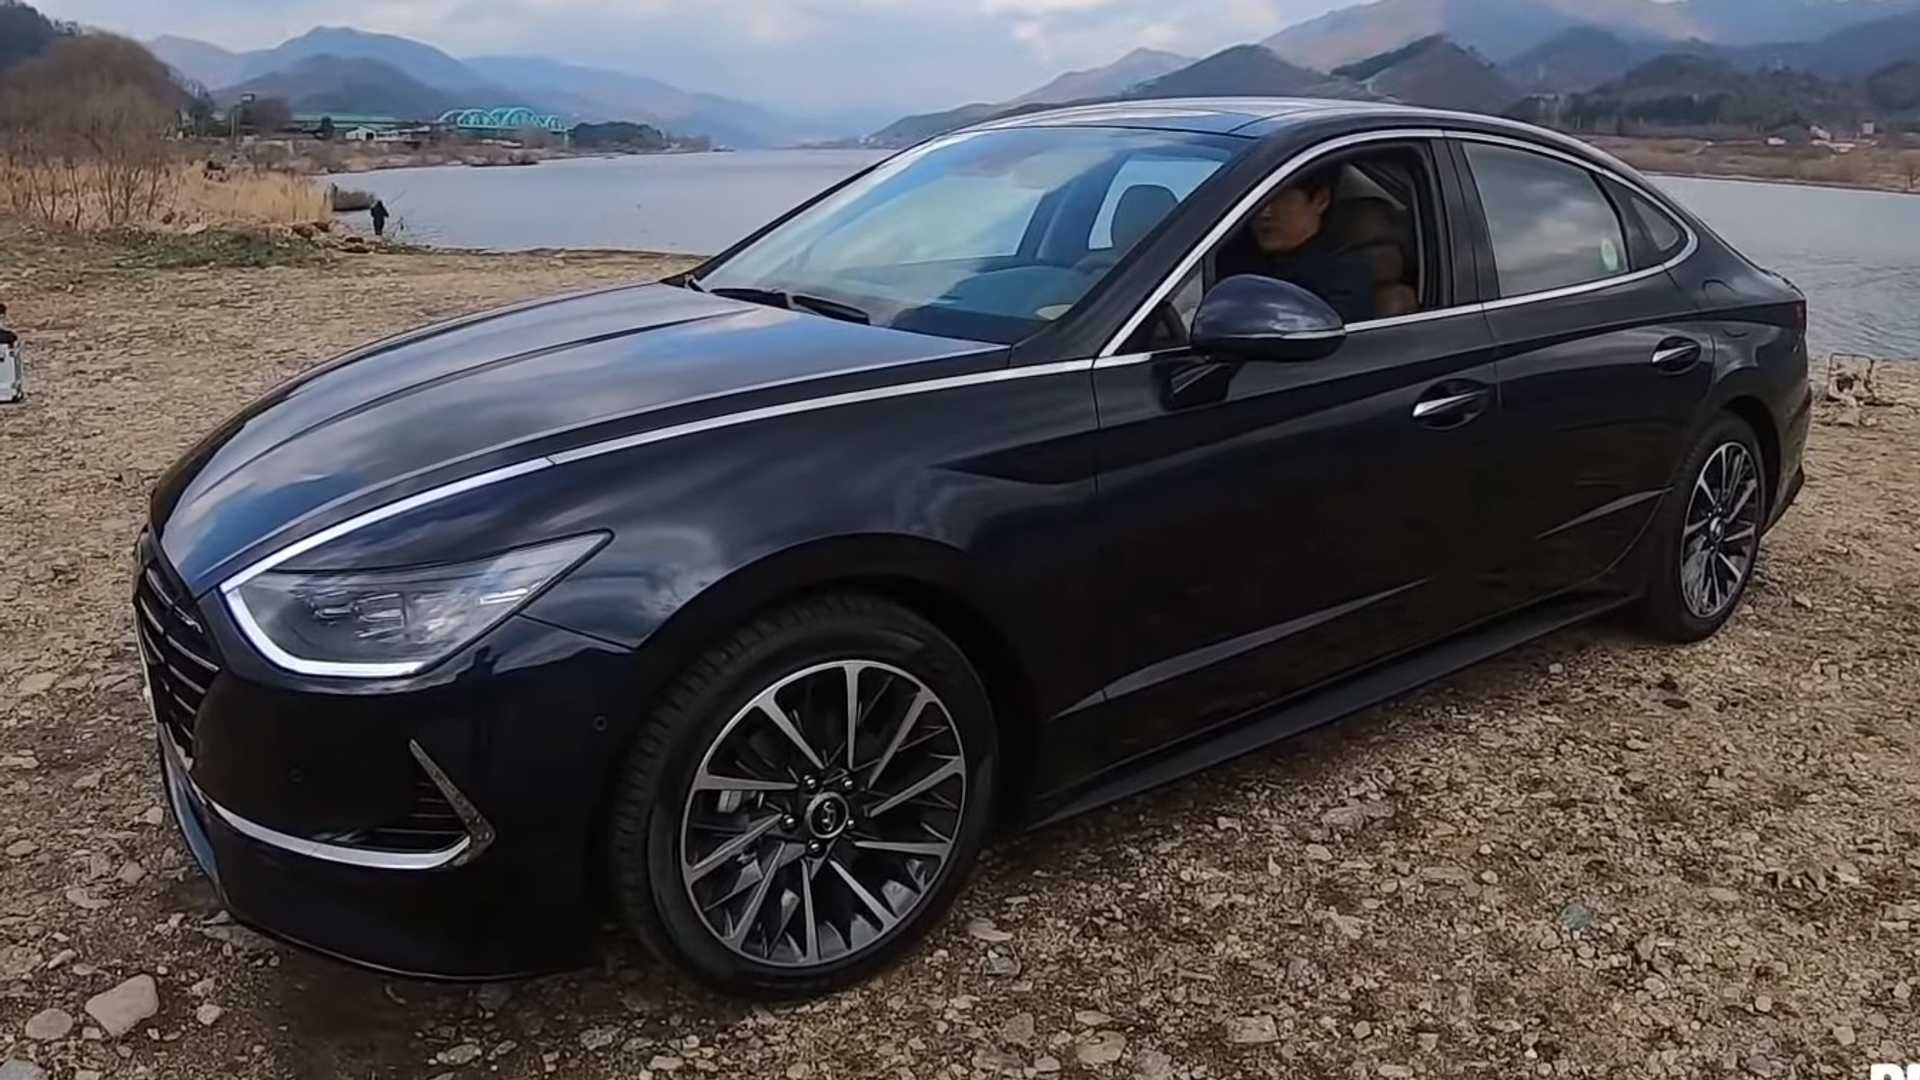 2020 hyundai sonata extensively detailed in lengthy video